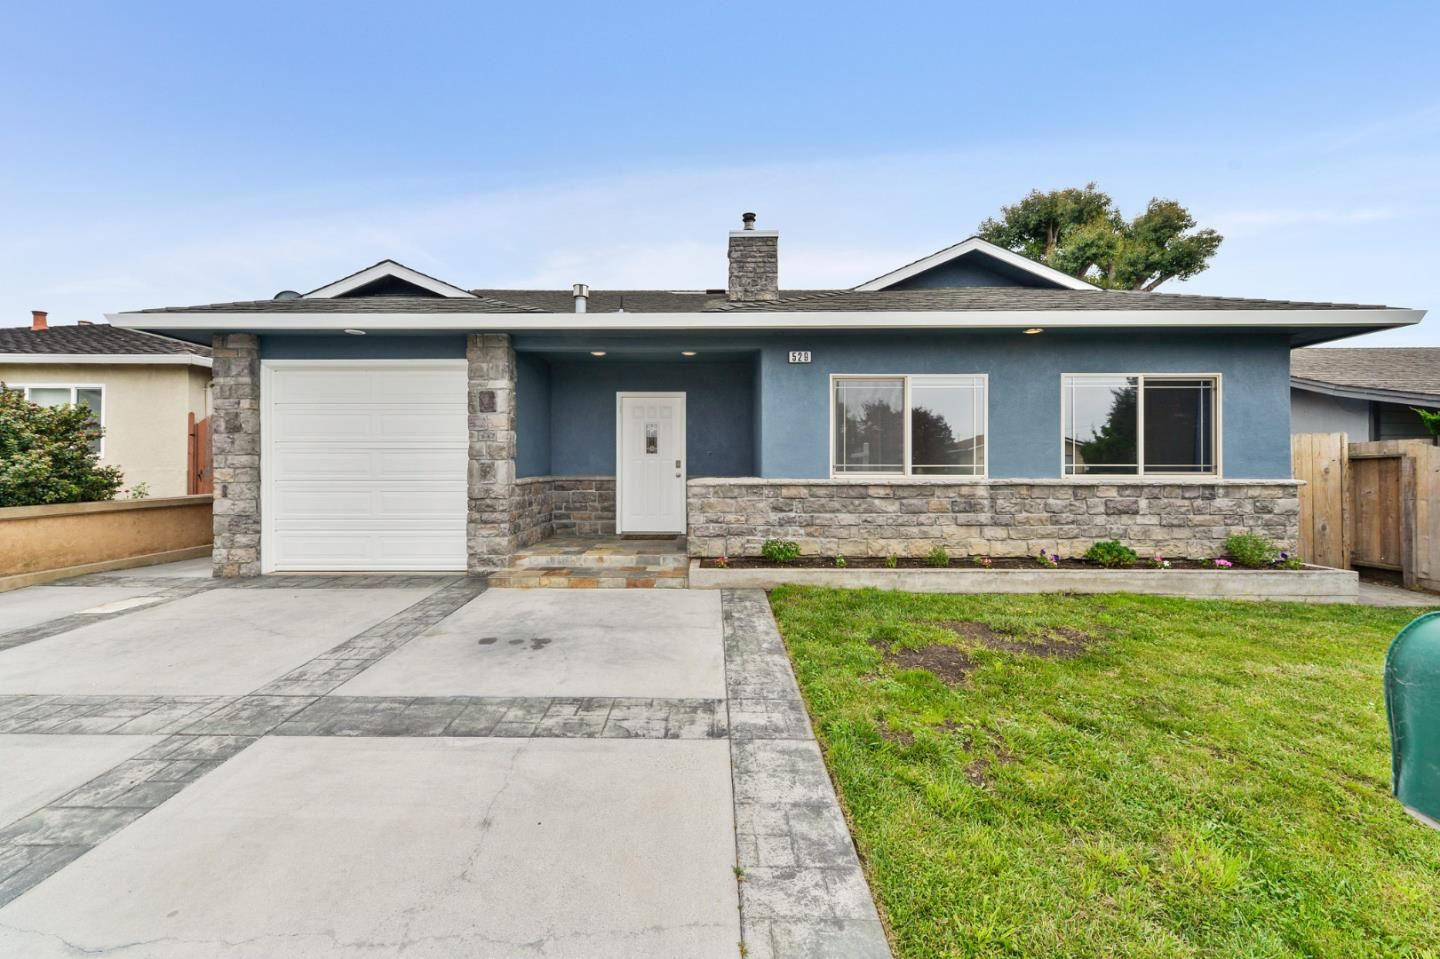 Photo for 529 Terrace AVE, HALF MOON BAY, CA 94019 (MLS # ML81807932)